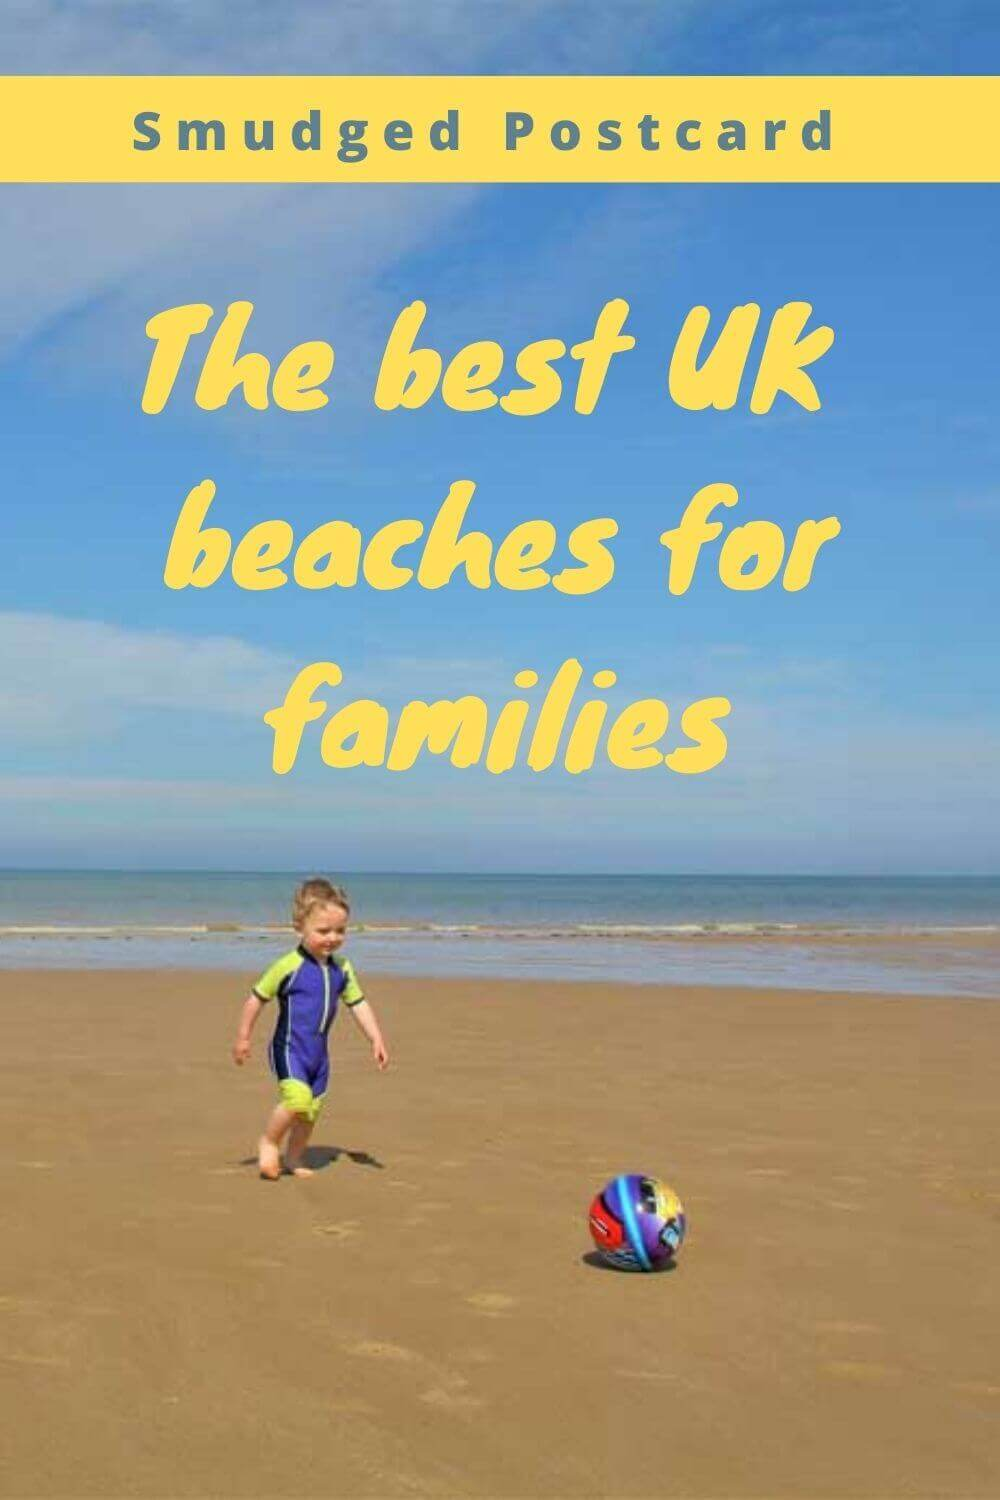 The best UK beach breaks for families